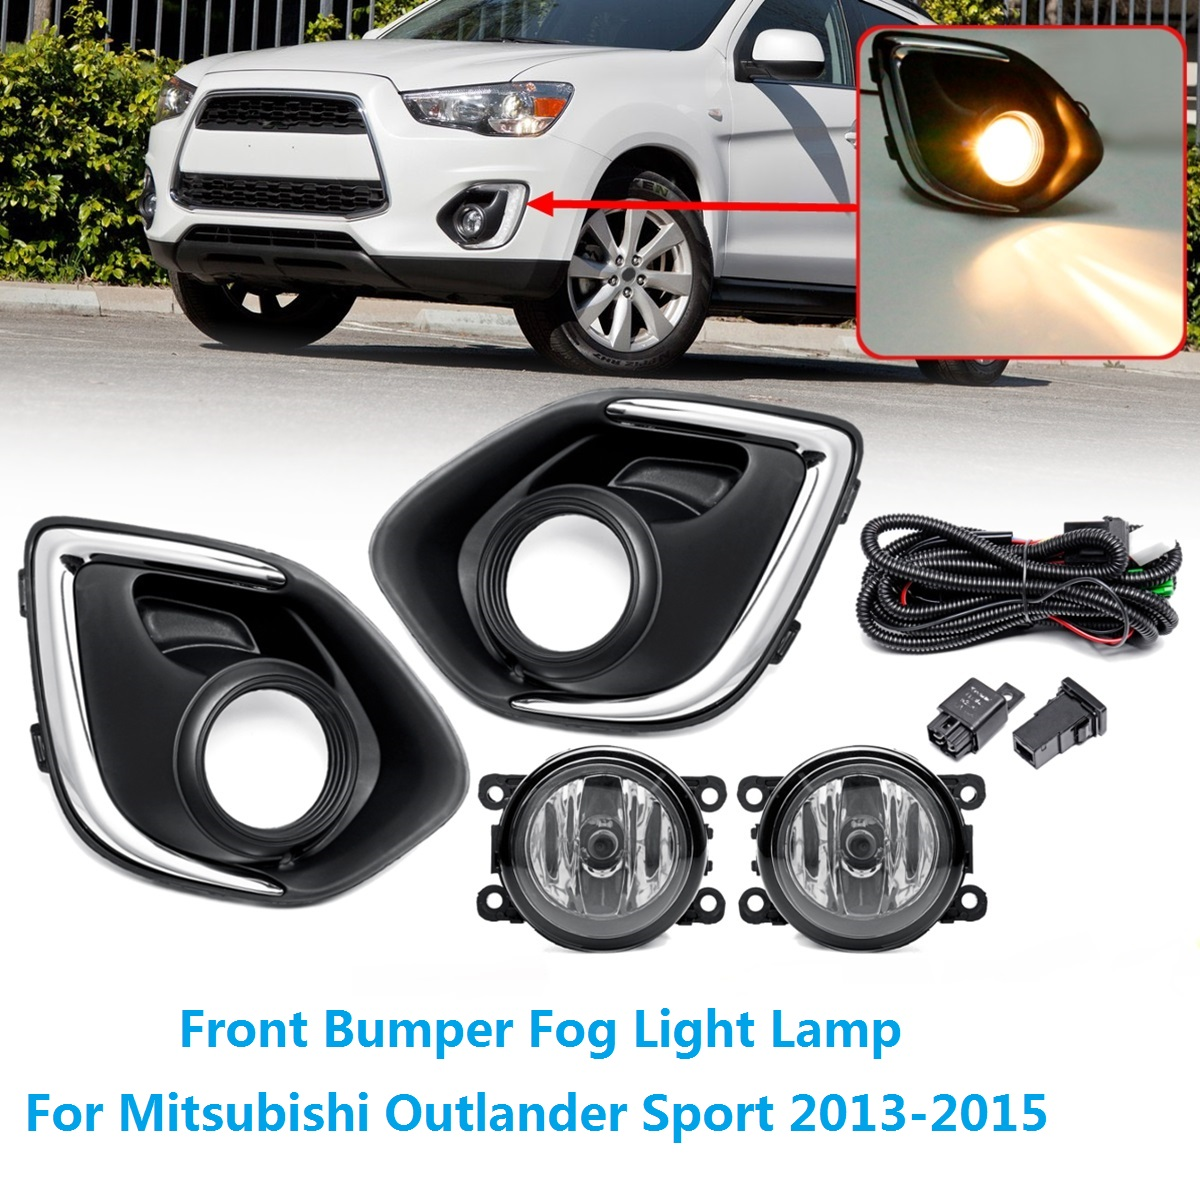 Car Front Bumper Halogen Fog Lights H11 Amber with Wire Covers for Mitsubishi ASX Outlander Sport 2013 2014 2015 Car Front Lamps